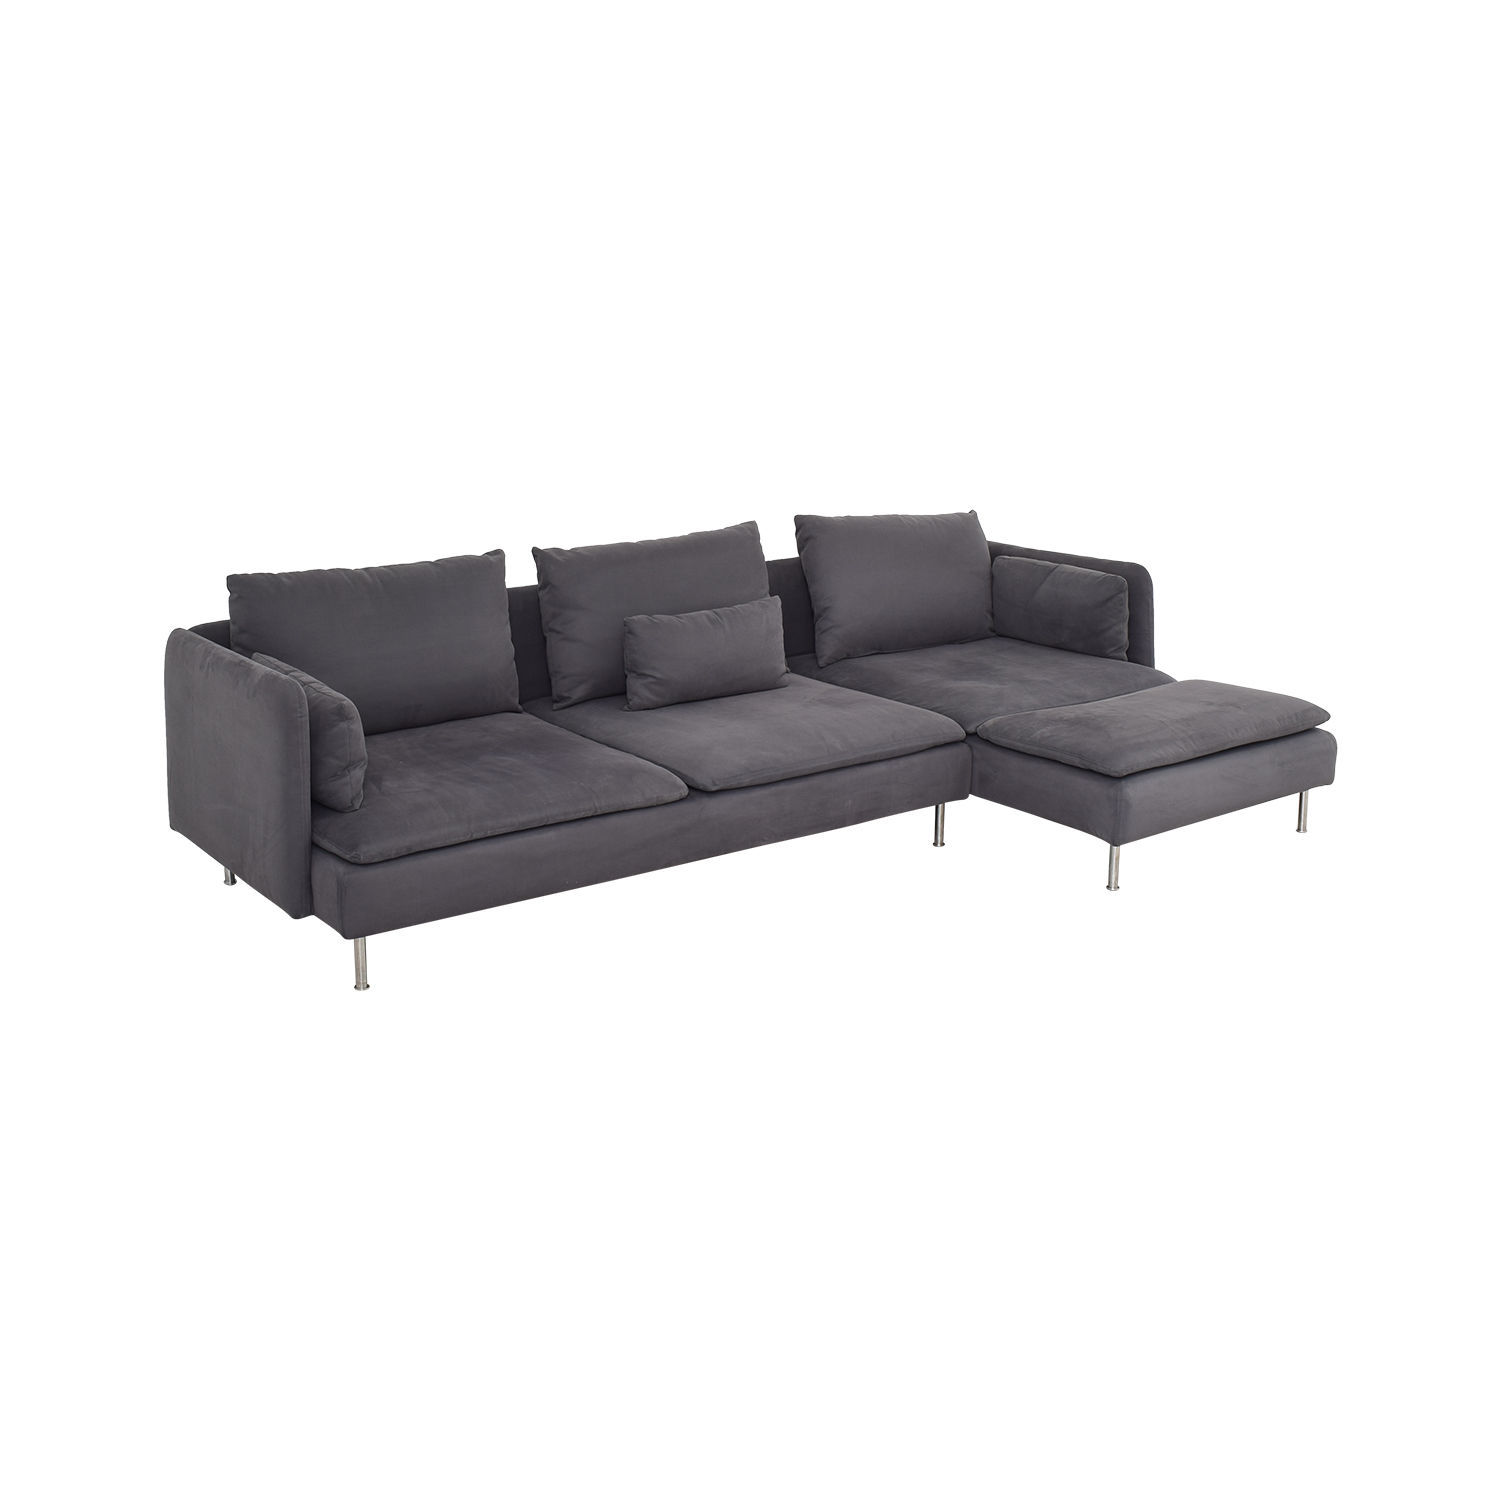 Admirable 20 Off Ikea Ikea Soderhamn Sectional Sofa With Chaise Sofas Ncnpc Chair Design For Home Ncnpcorg